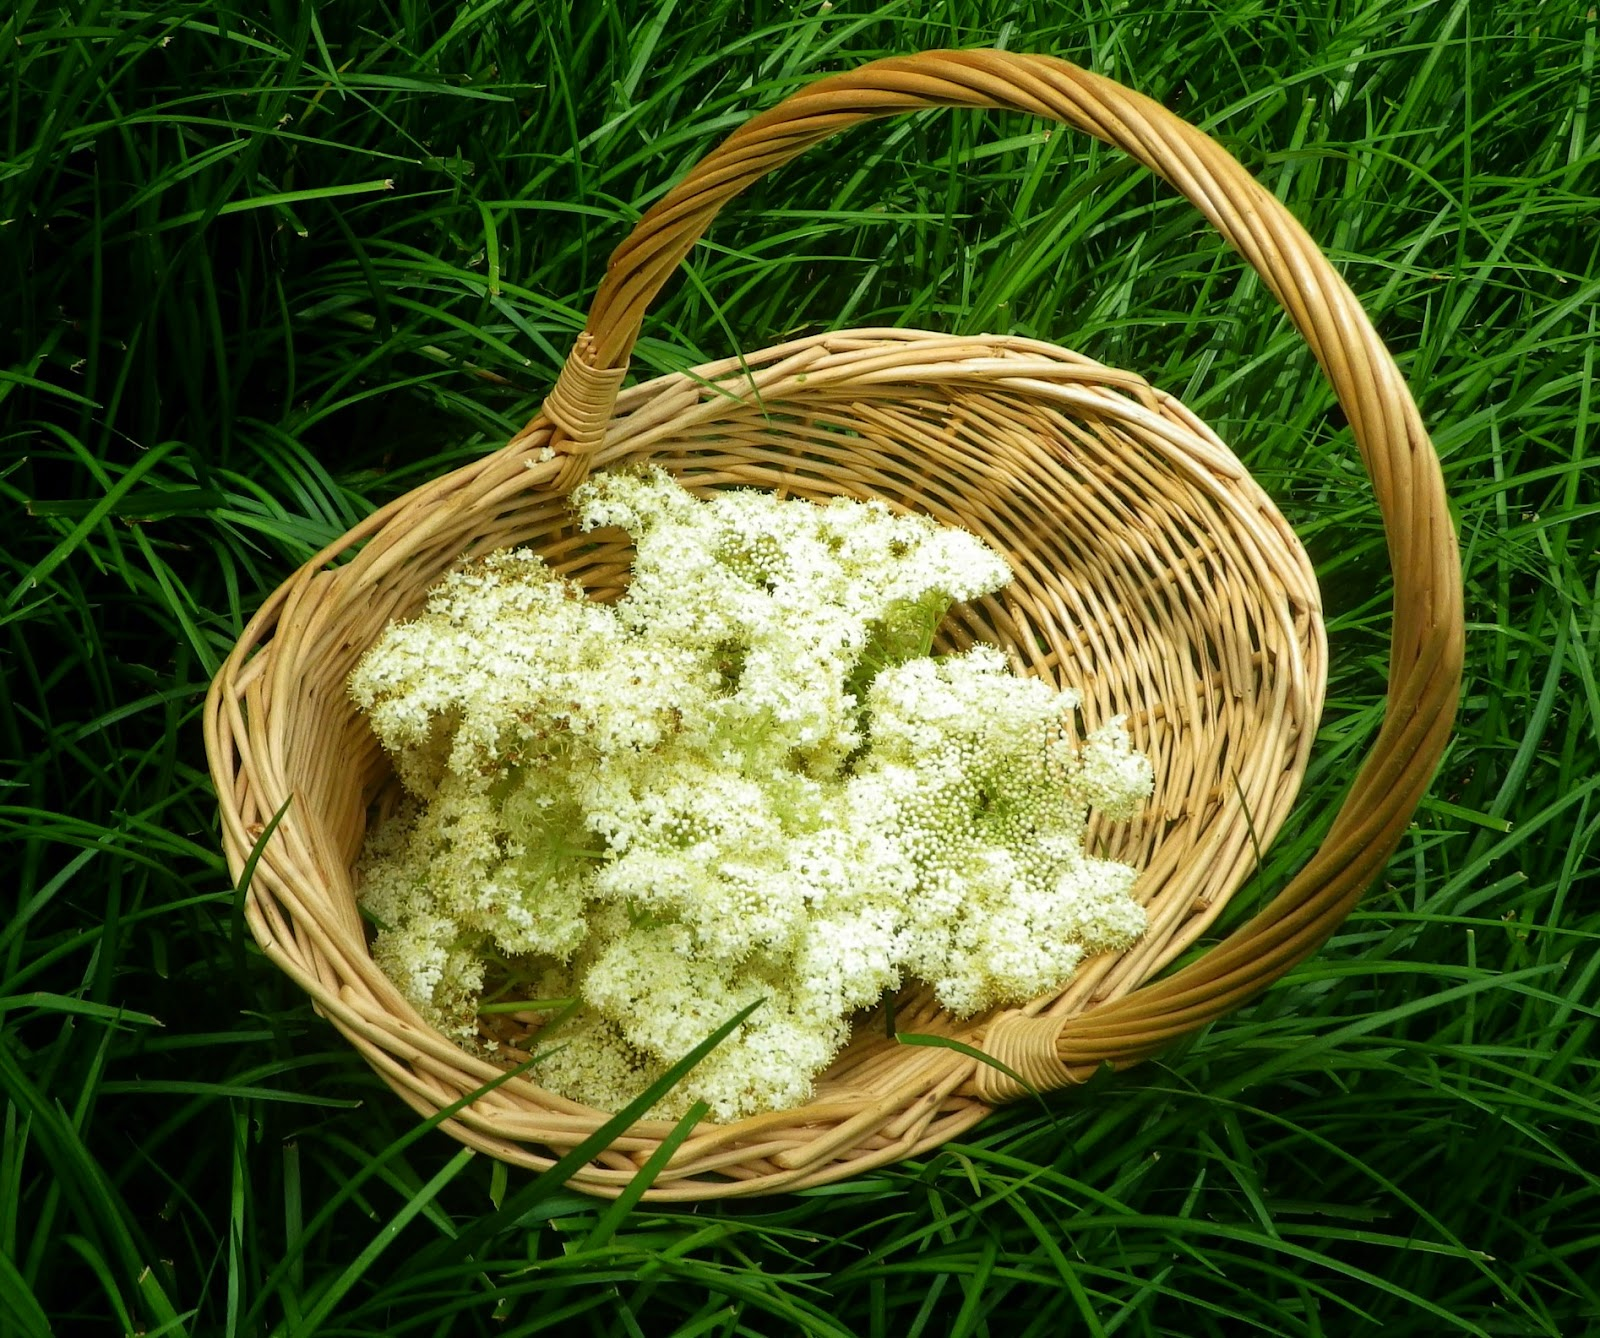 Elder flowers in basket - Laura Perry author editor artist